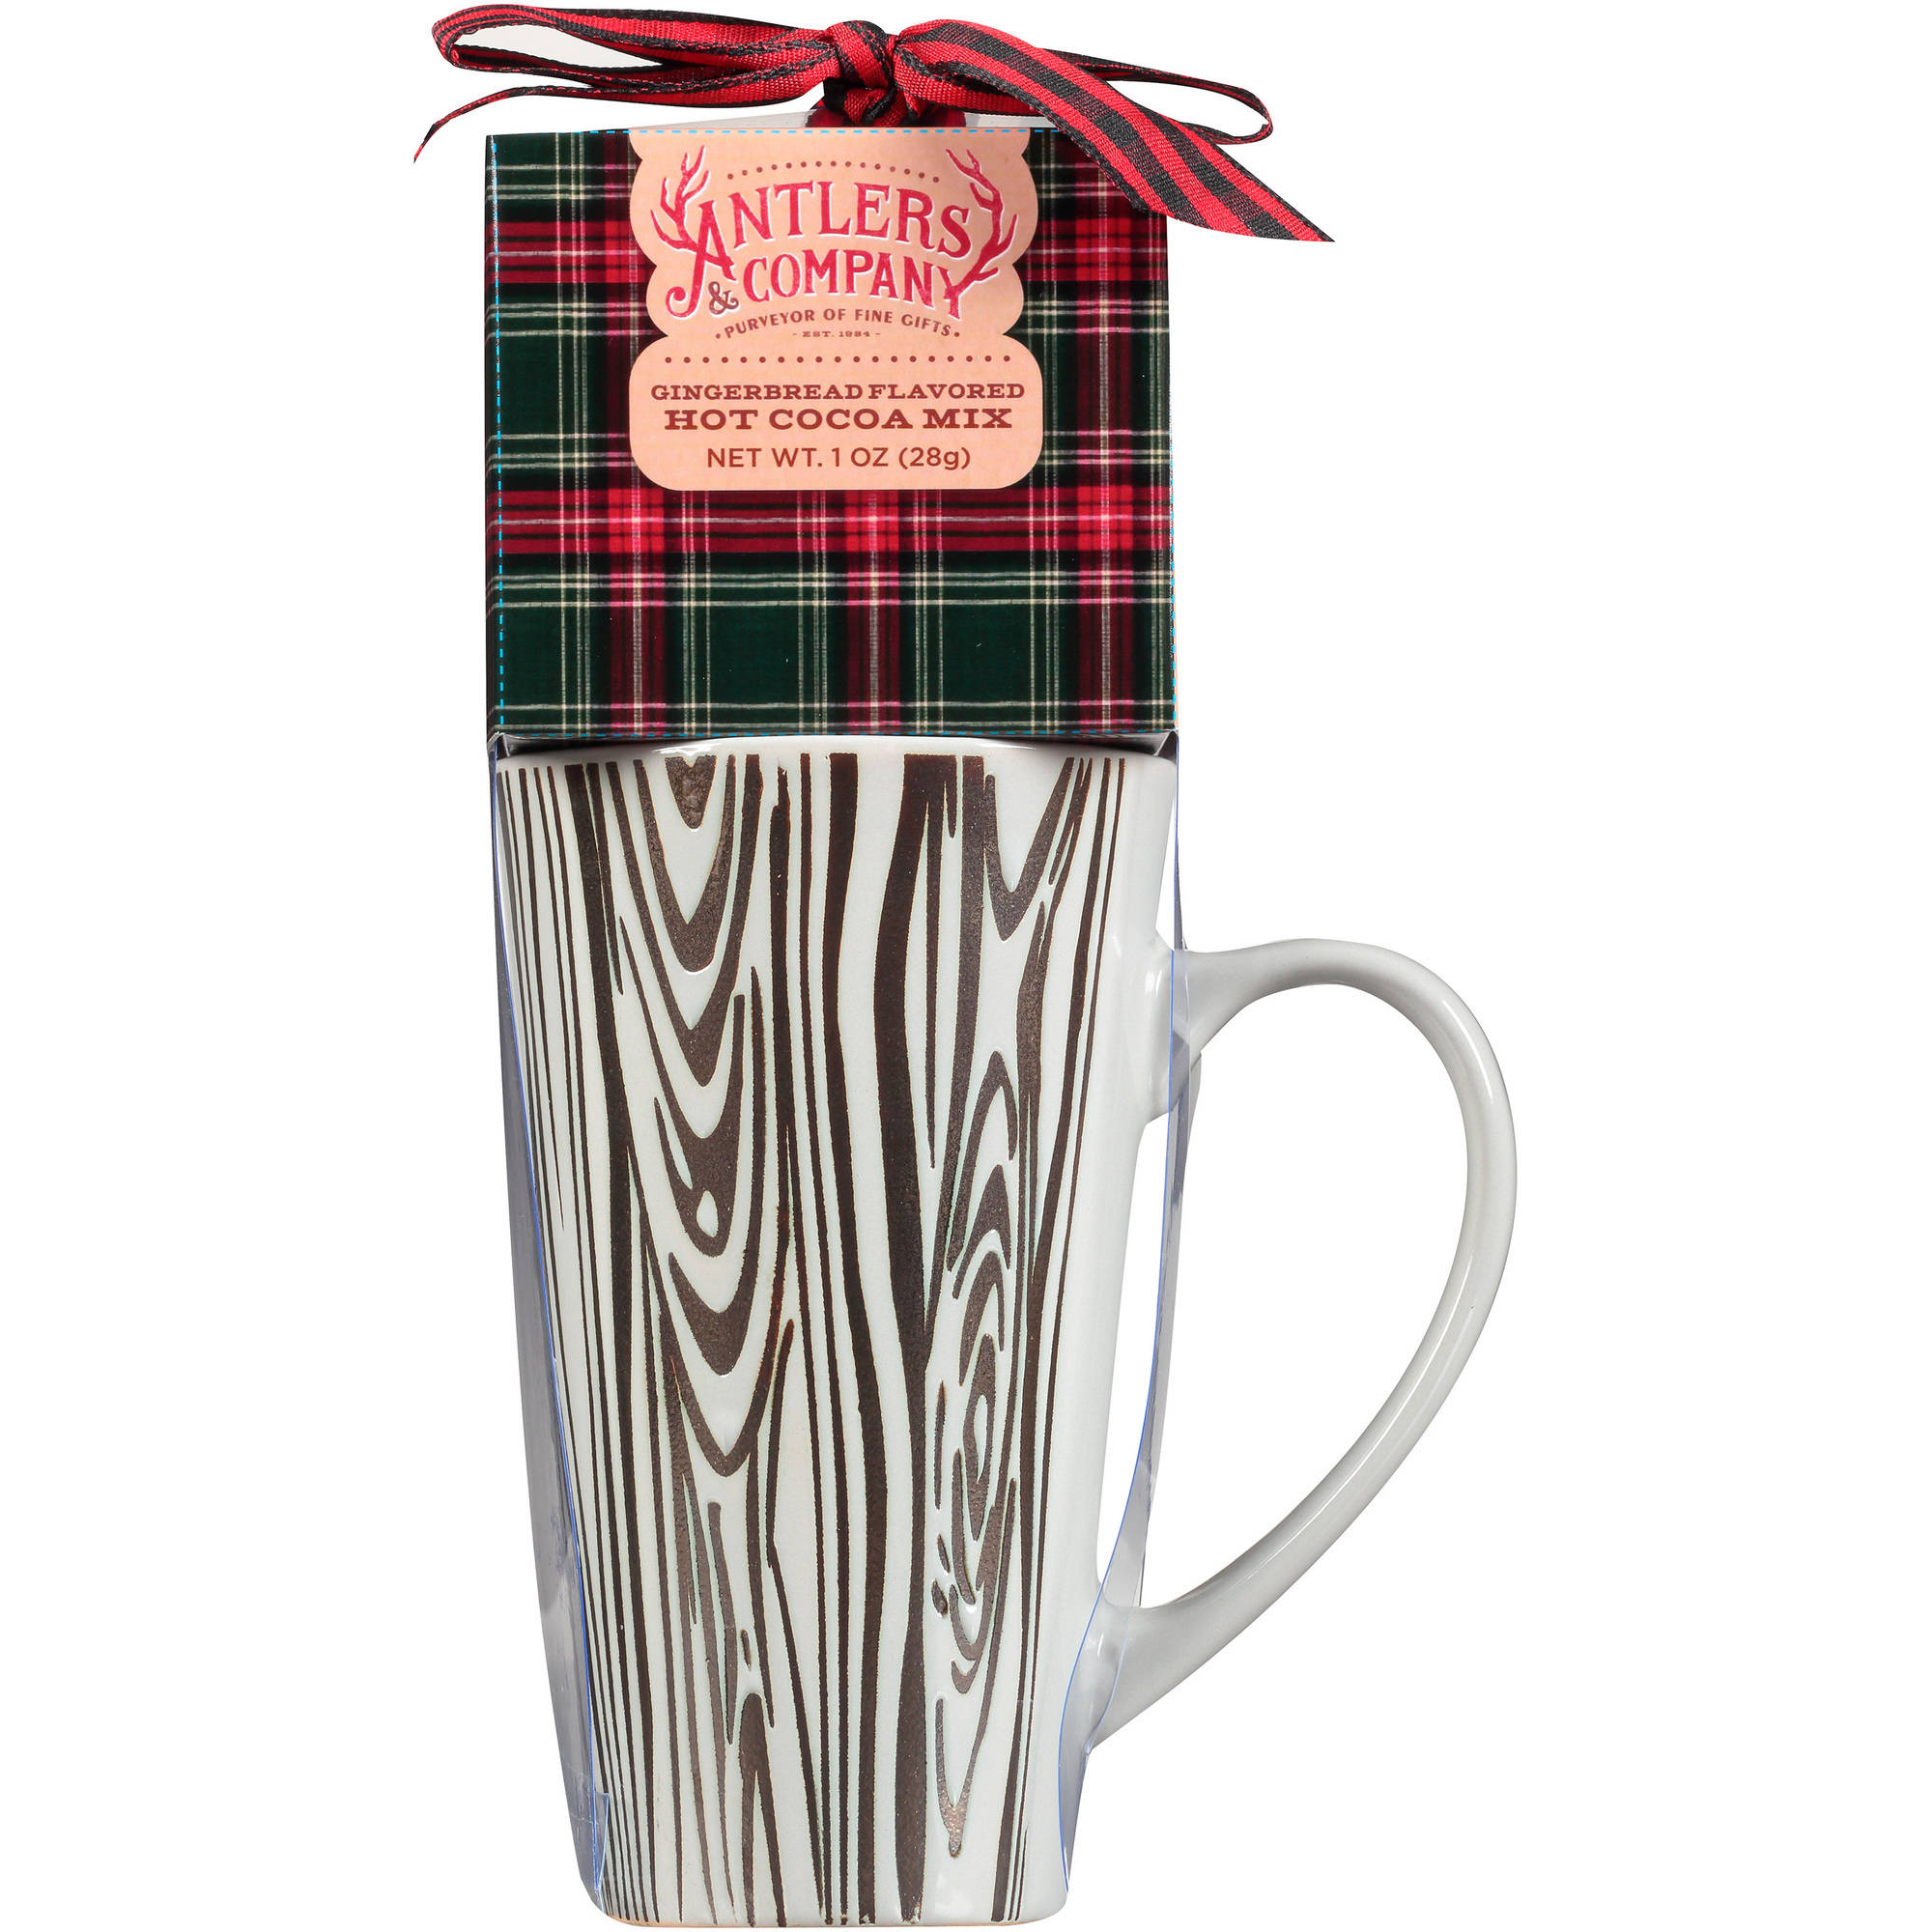 Antlers & Company Hot Cocoa Mix Gift Set, 2 pc